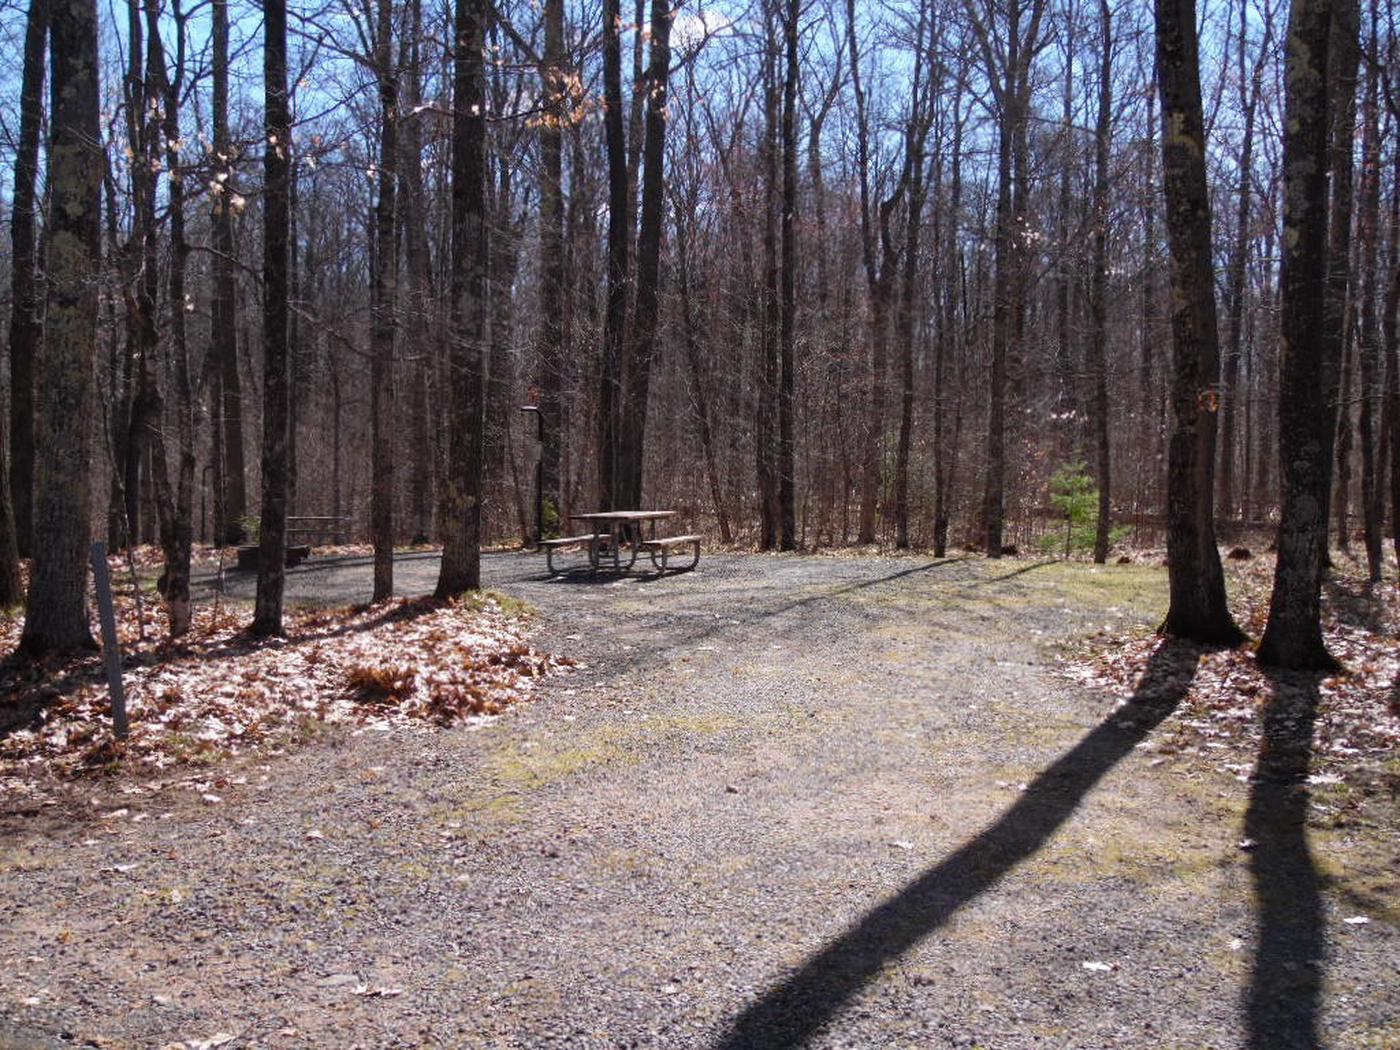 Two Lakes Campground site #23 with picnic table and fire pit view among the trees.